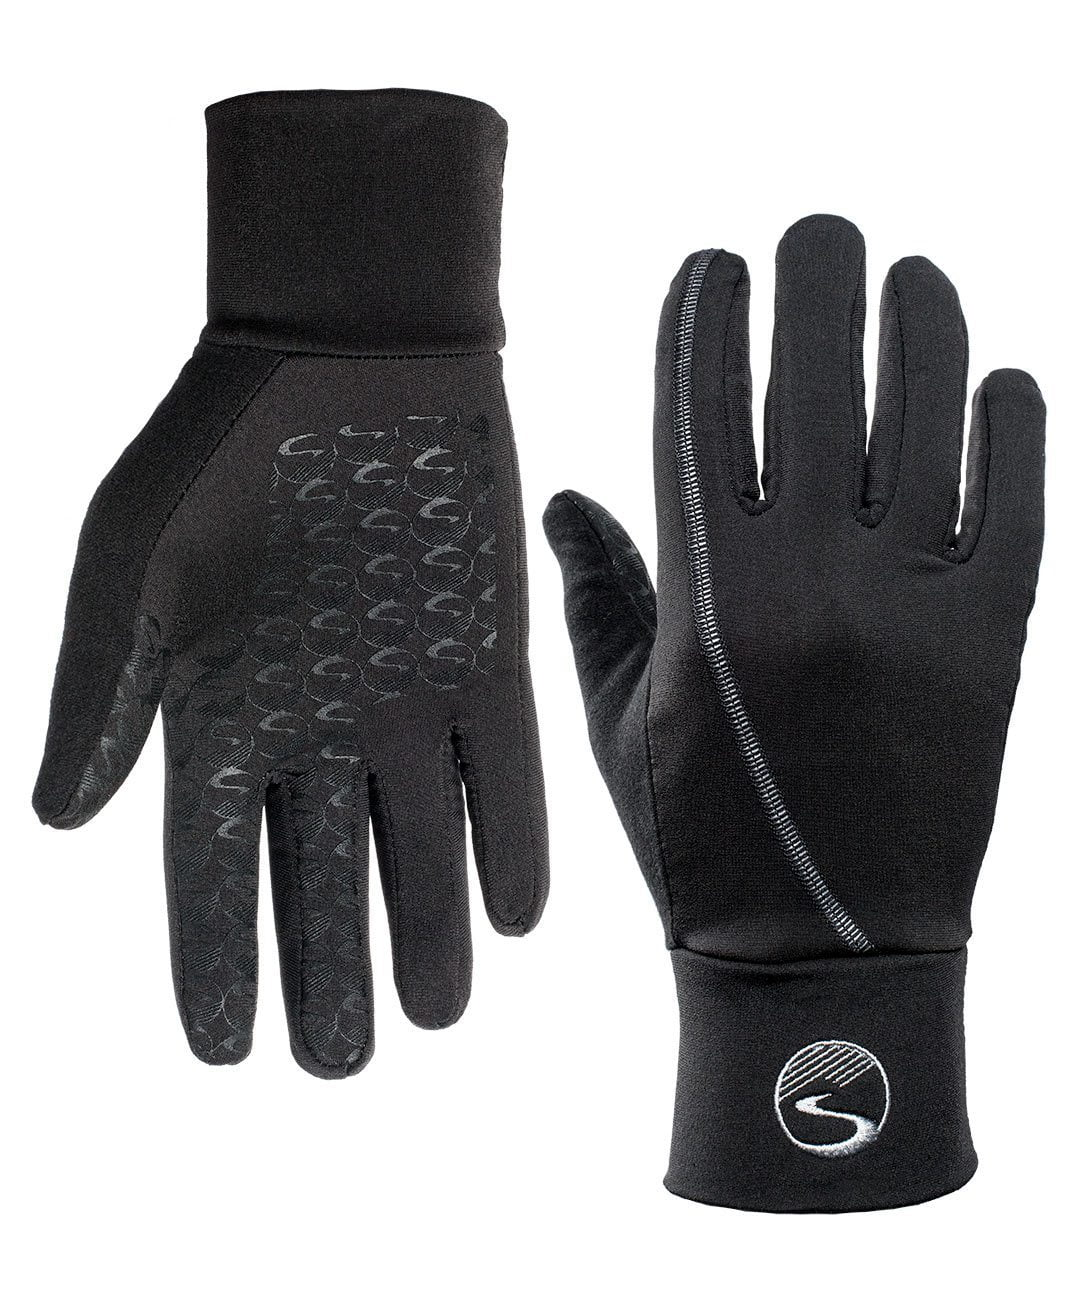 Men's Crosspoint Touch Screen Liner Glove